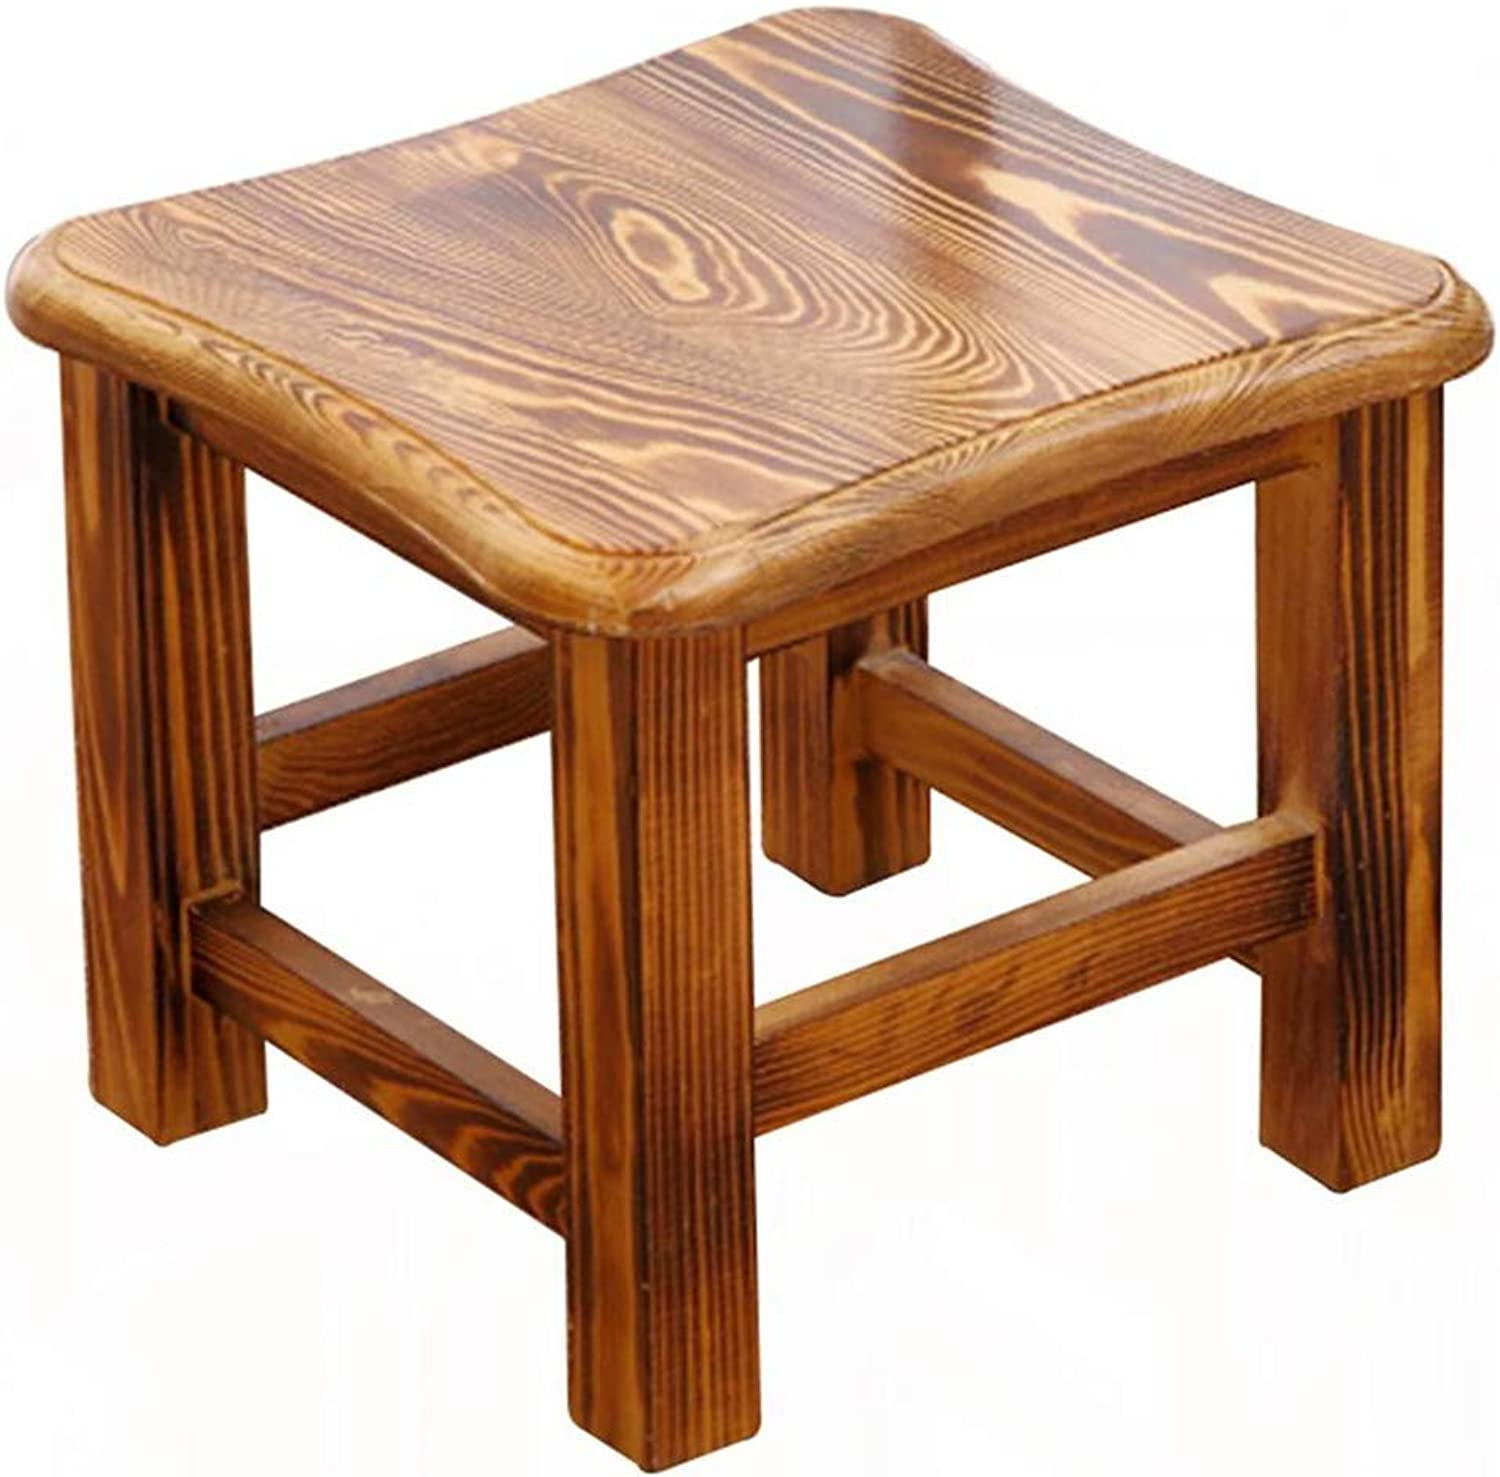 Stool - shoes Bench, Household Solid Wood Coffee Table Stool, Small Square Stool